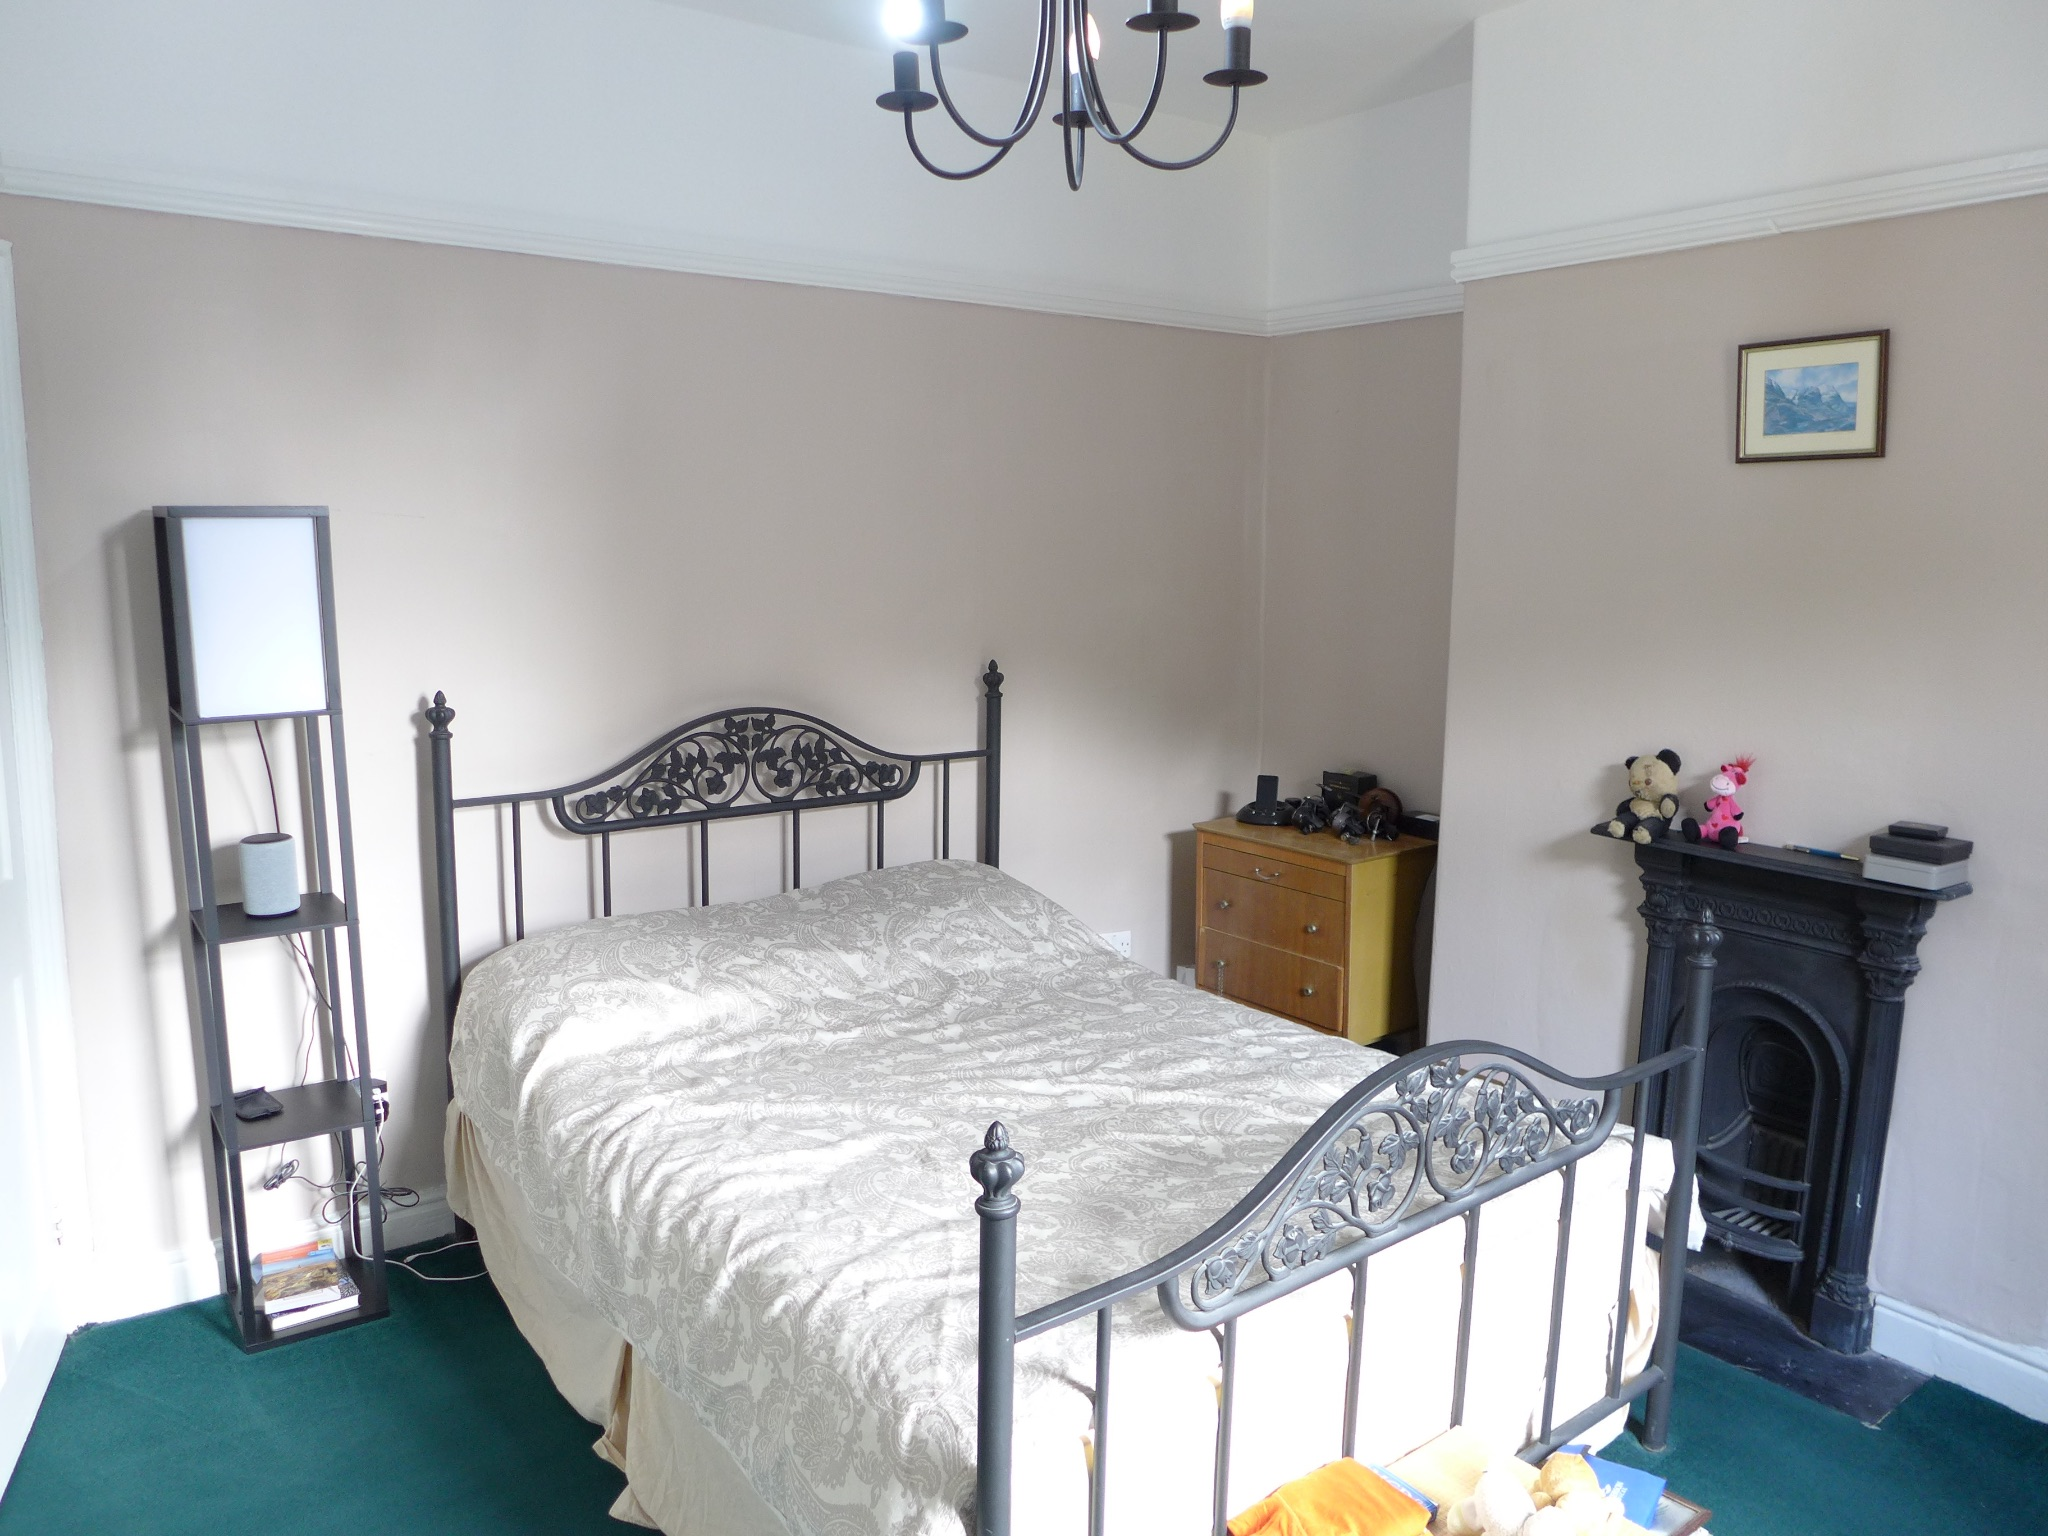 3 bedroom end terraced house For Sale in Todmorden - Photograph 10.